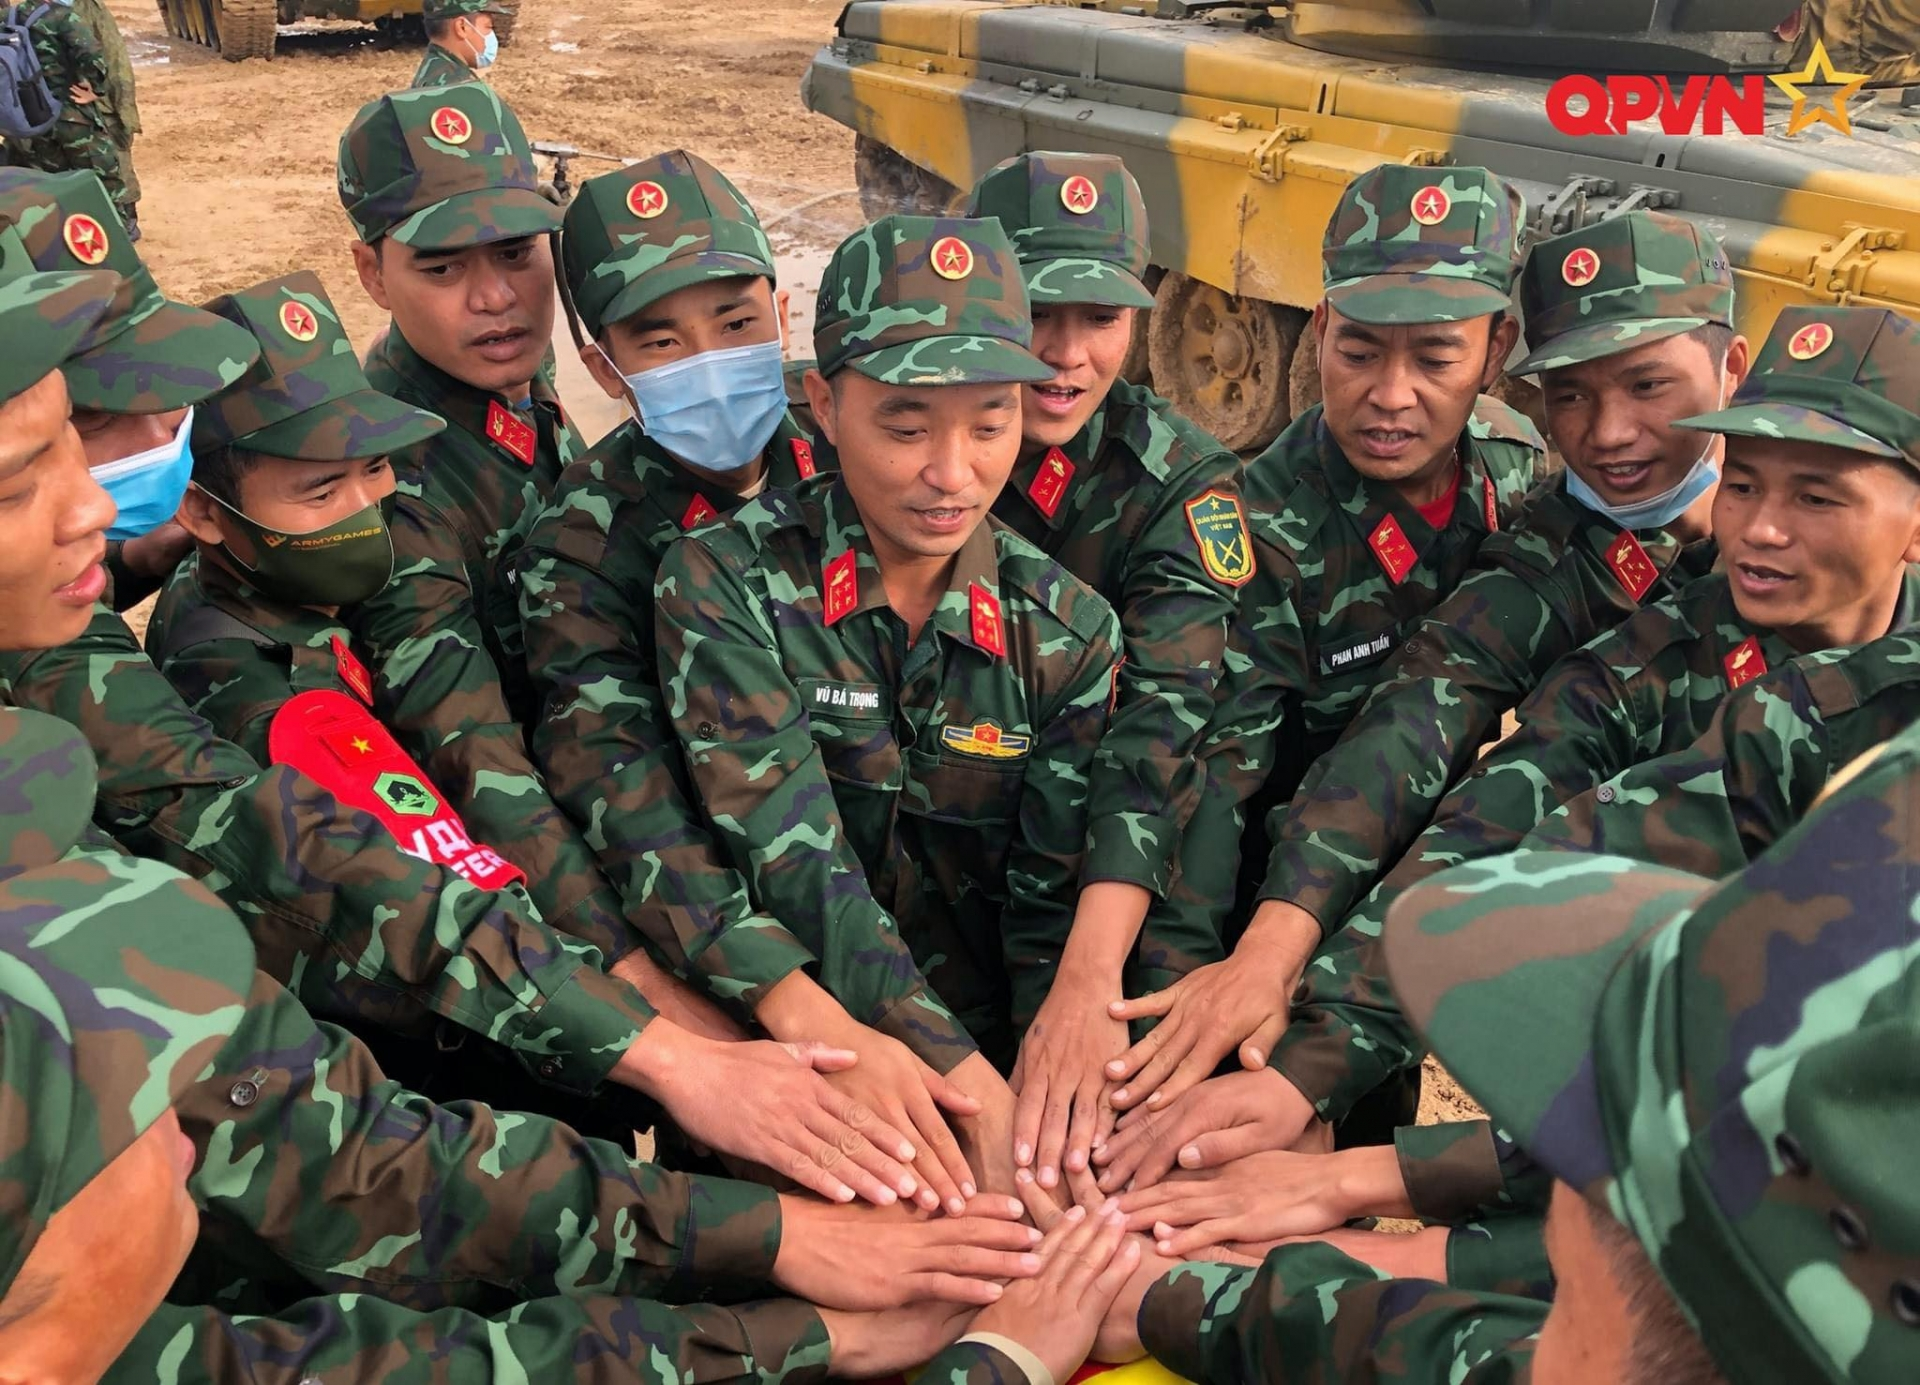 in photos outstanding results vietnam teams gain at 2020 army games